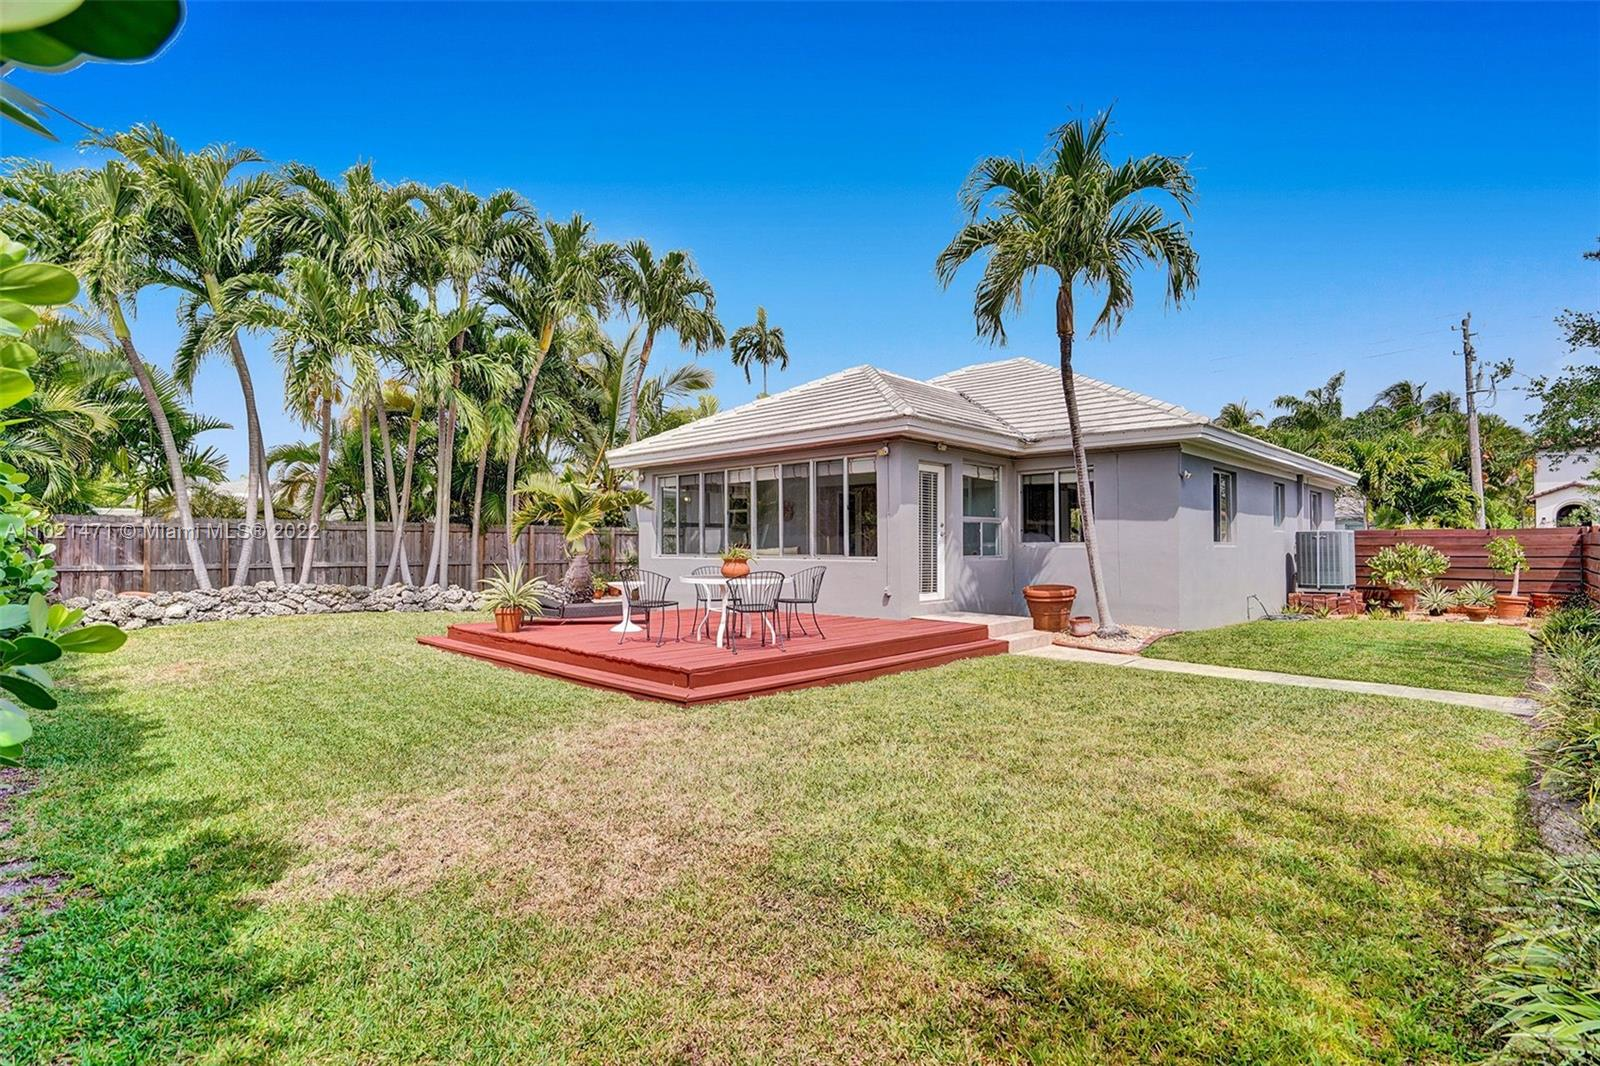 Back on the Market!!! Landscaped and beautiful house in Biscayne Point. Kitchen with granite counter top. Master bedroom and master bathroom located on the second floor. Ample one car garage attached. House sit on a huge corner lot and it is the lowest priced property in the subdivision!!!